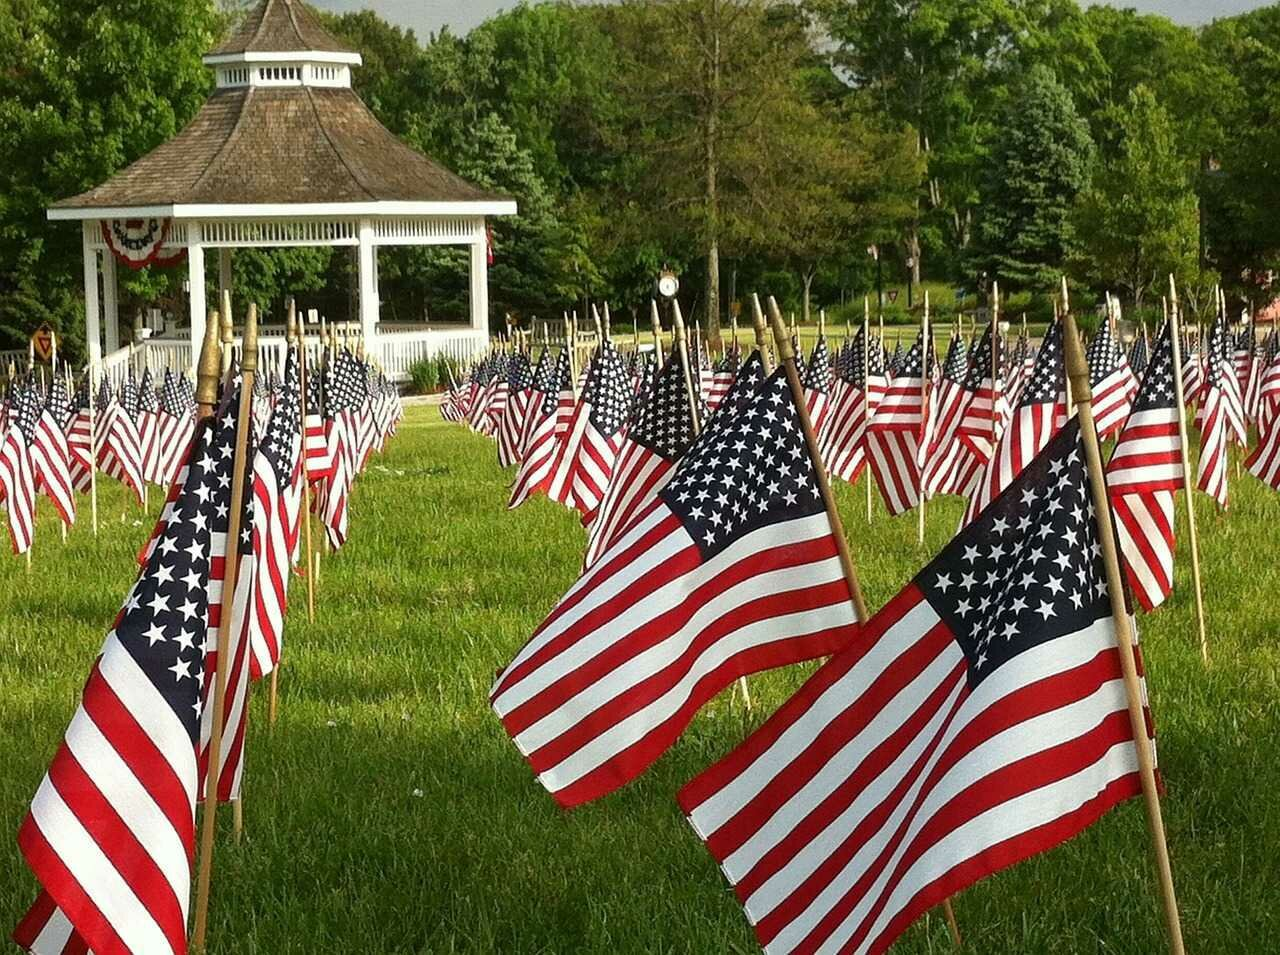 https://pixabay.com/en/flags-american-memorial-day-freedom-292774/